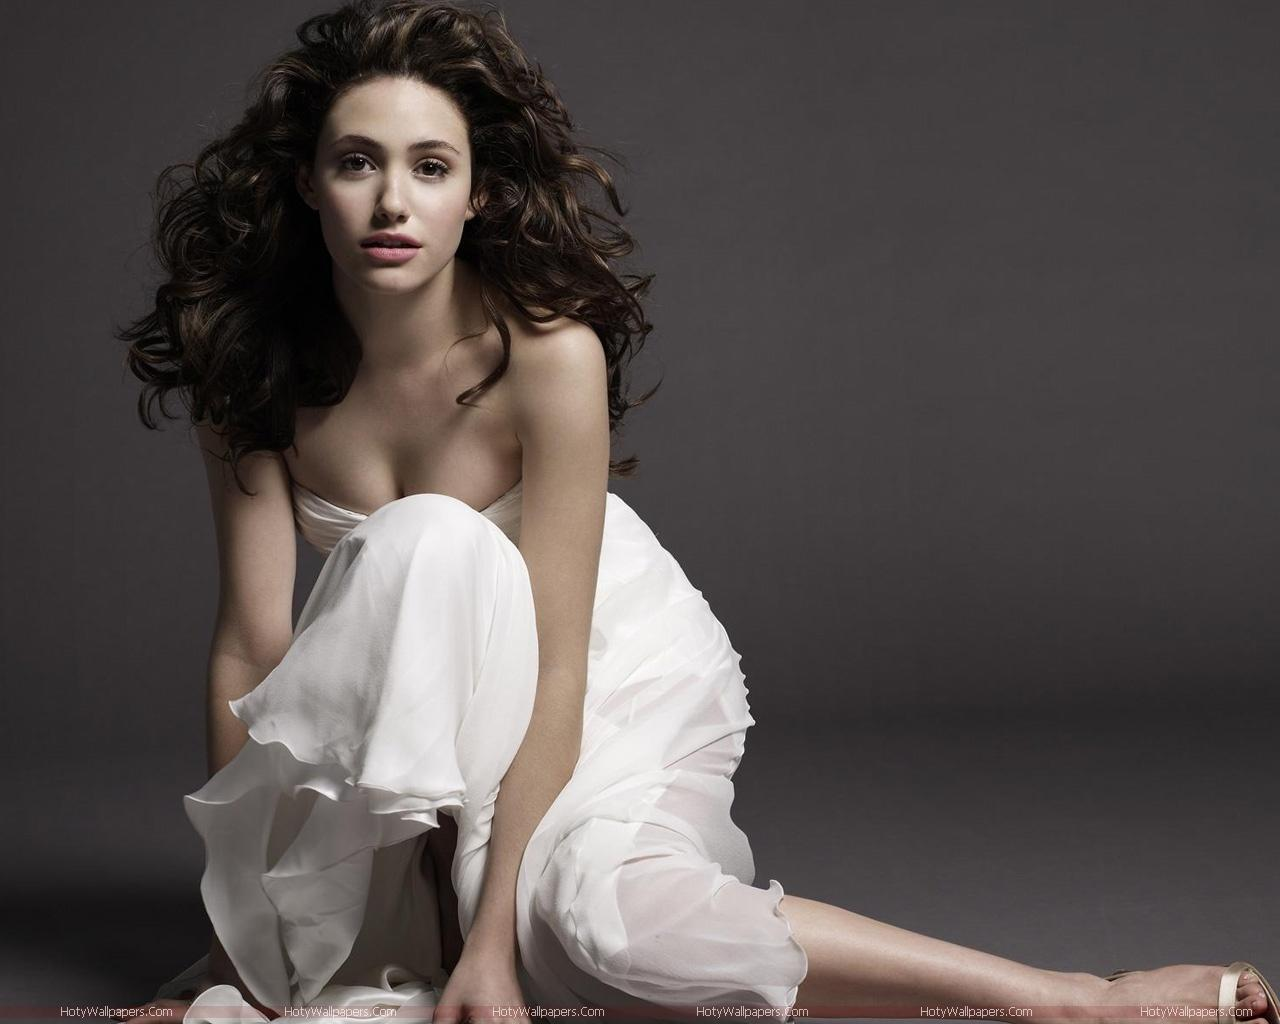 http://1.bp.blogspot.com/-g2EsLDSrYa0/TlZrEbU77zI/AAAAAAAAJvQ/gRWGNDx6_t0/s1600/hollywood_actress_Emmy_Rossum-wallpaper-1600x1200.jpg